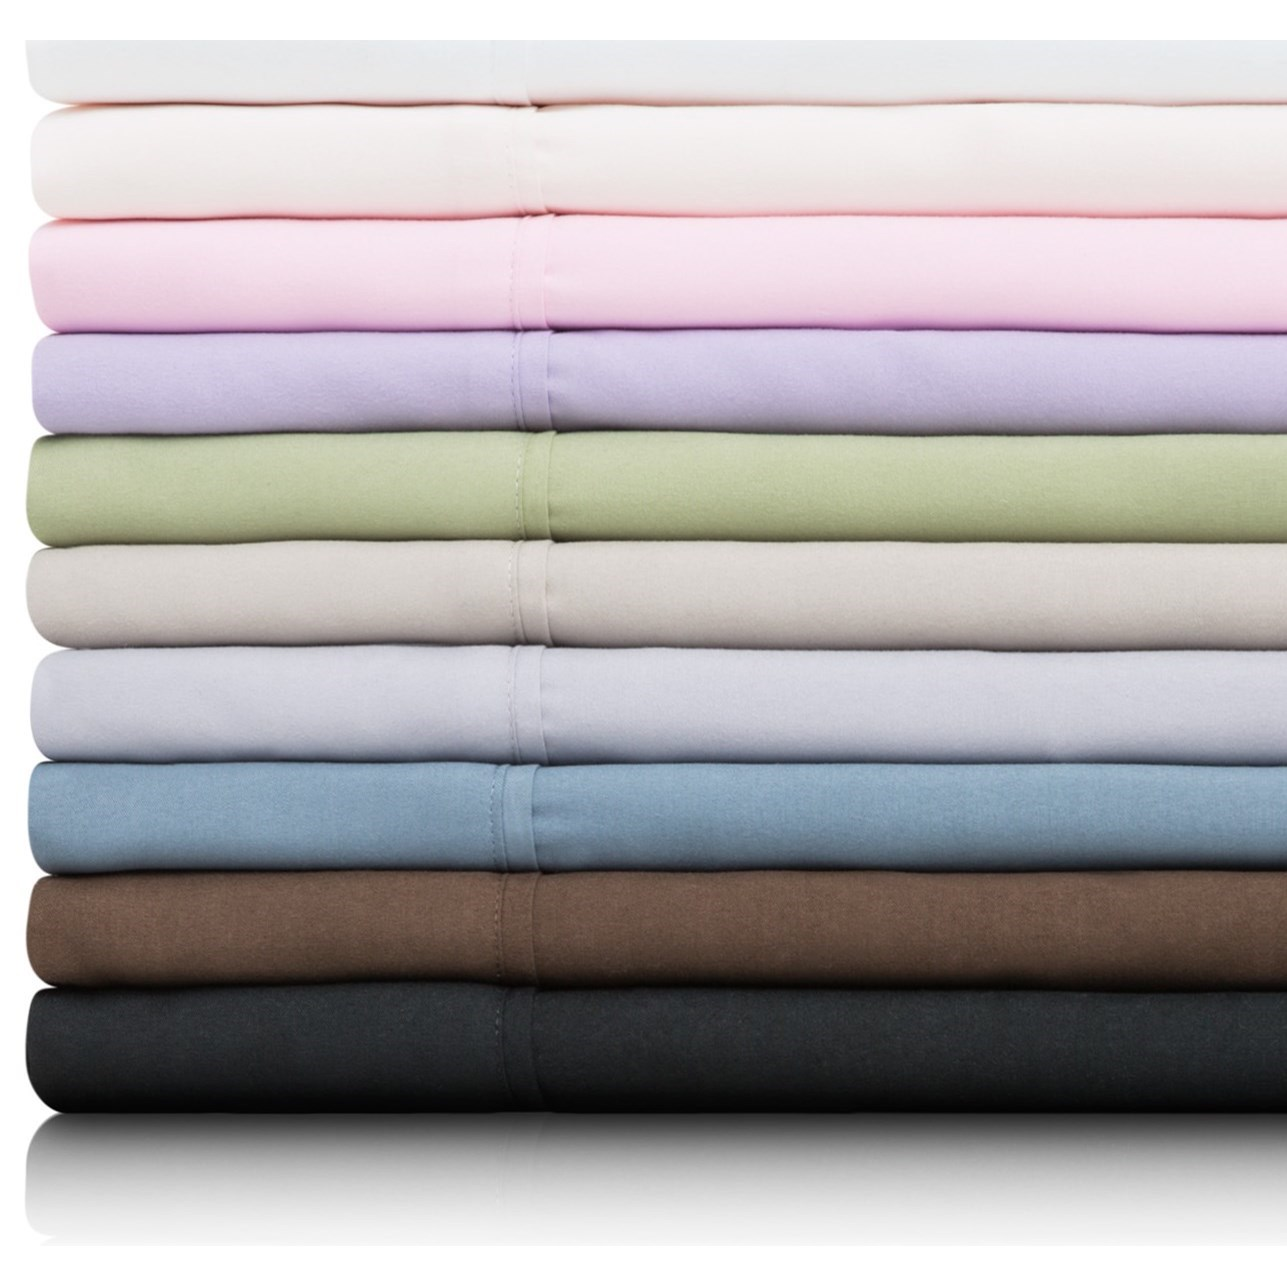 Malouf Brushed Microfiber Queen Woven™ Brushed Microfiber Short Sheet  - Item Number: MA90RQCHMS